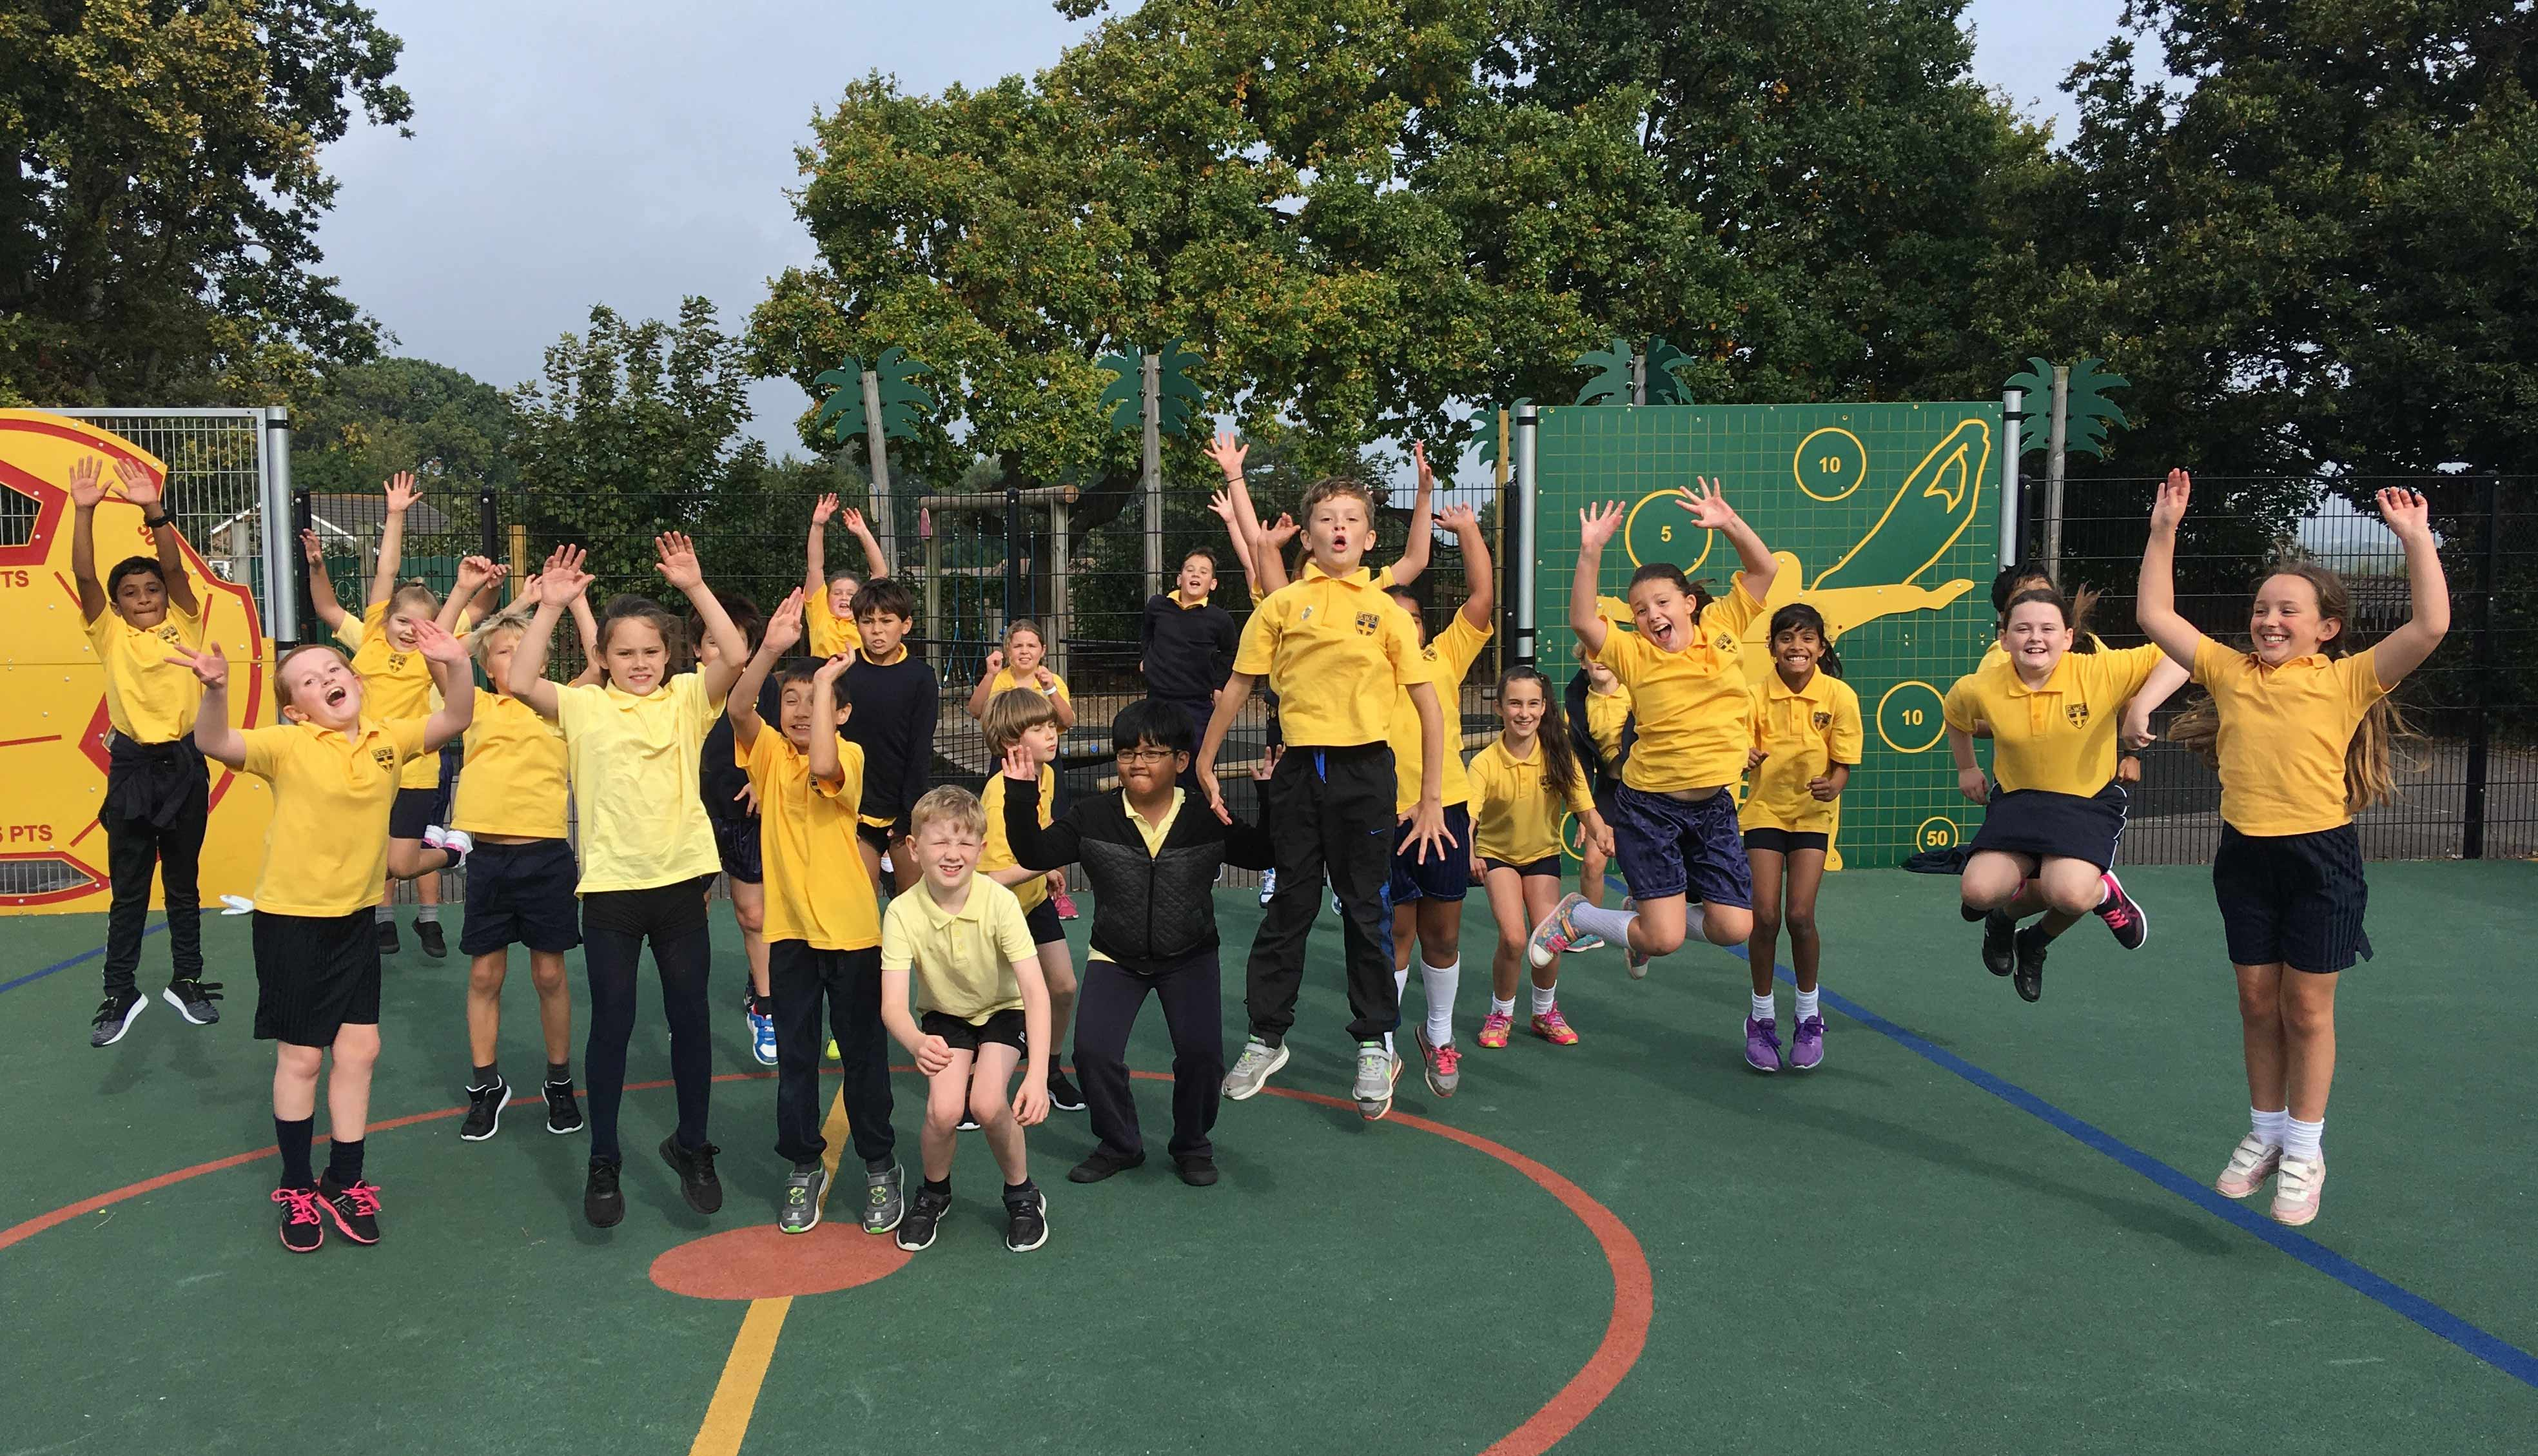 National Fitness Day Inspires Bournemouth Children To Get Active